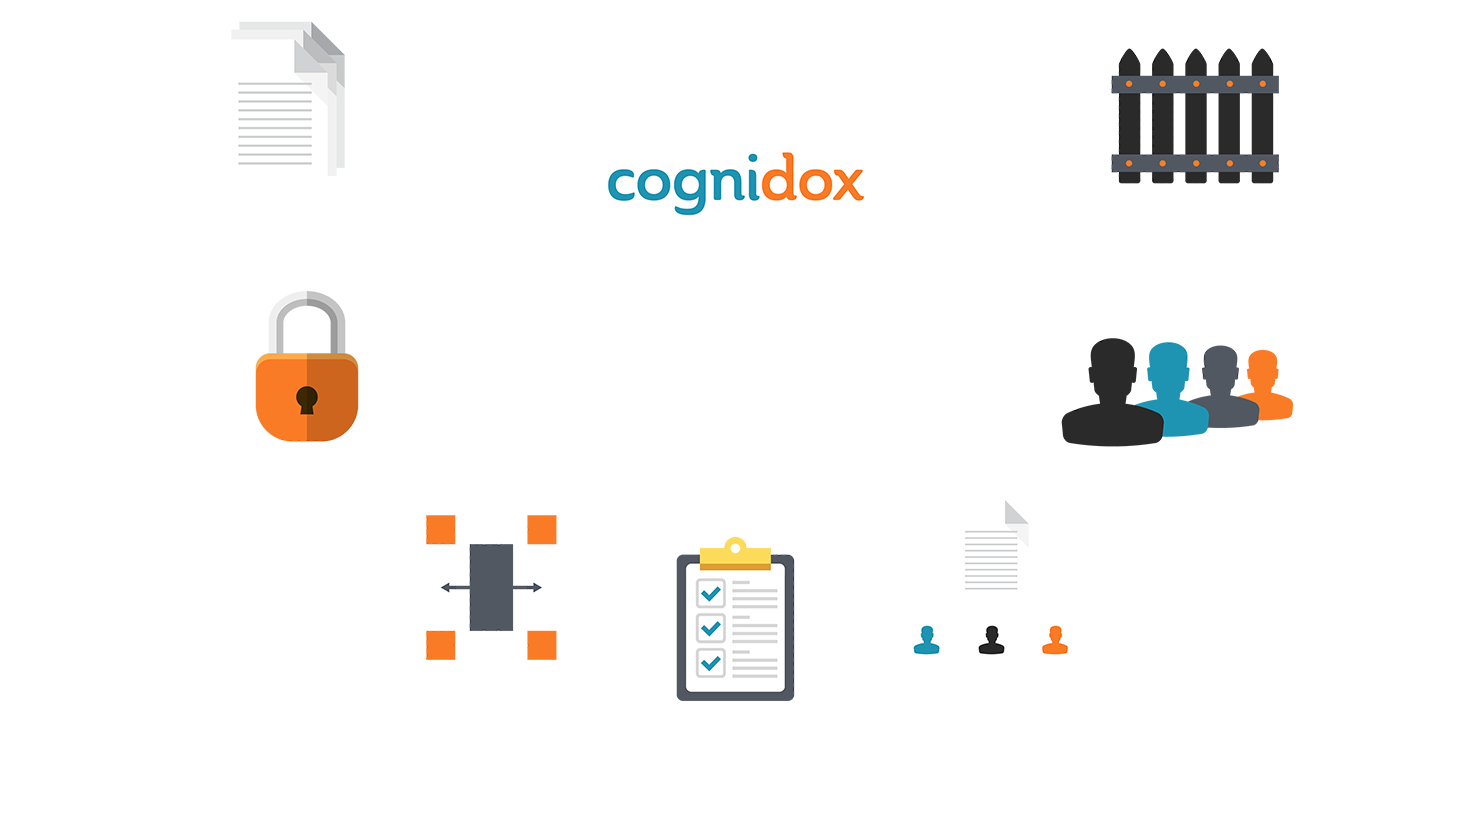 Cognidox-Infographic-A-web-1.png